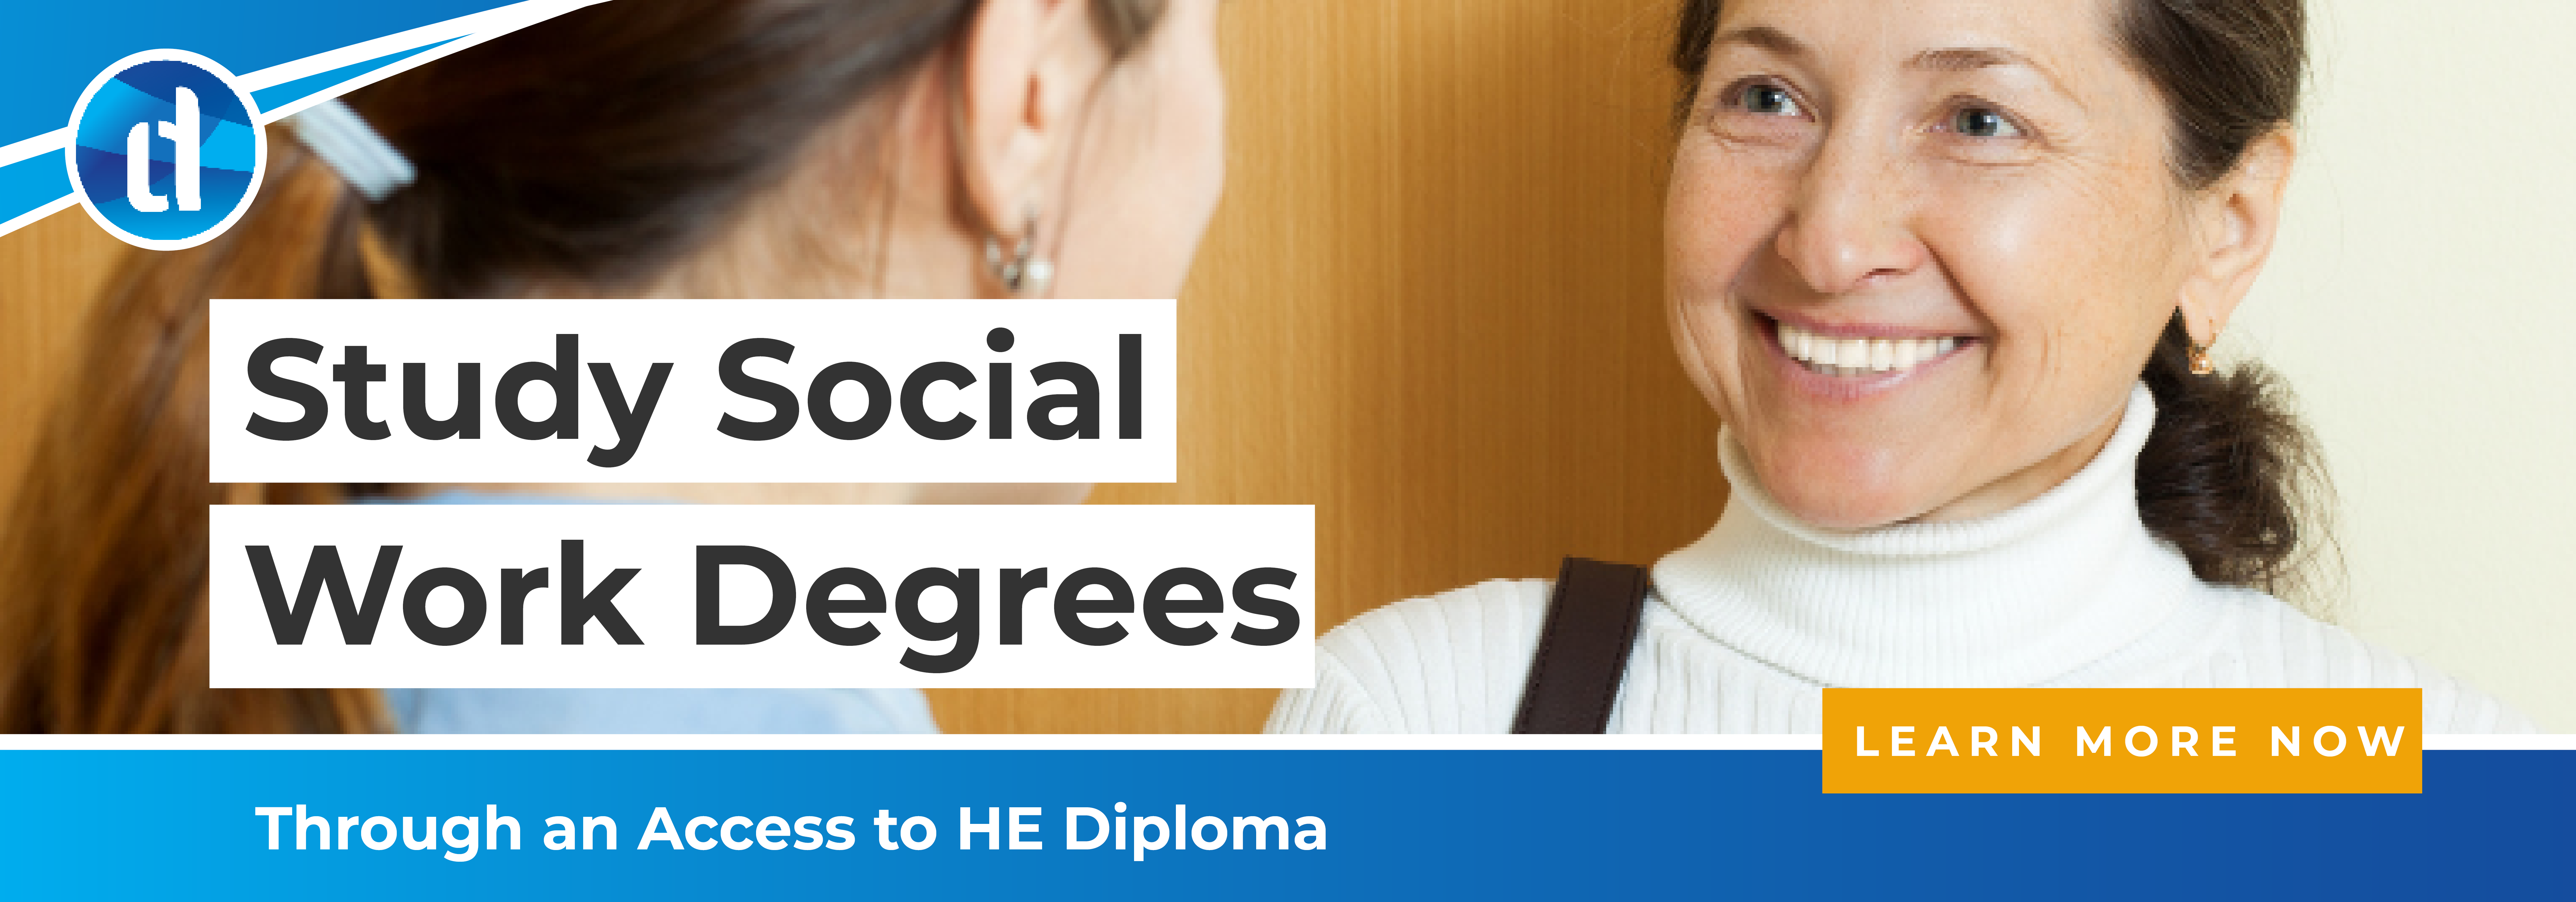 learndirect - study social work at university through an Access to HE Diploma